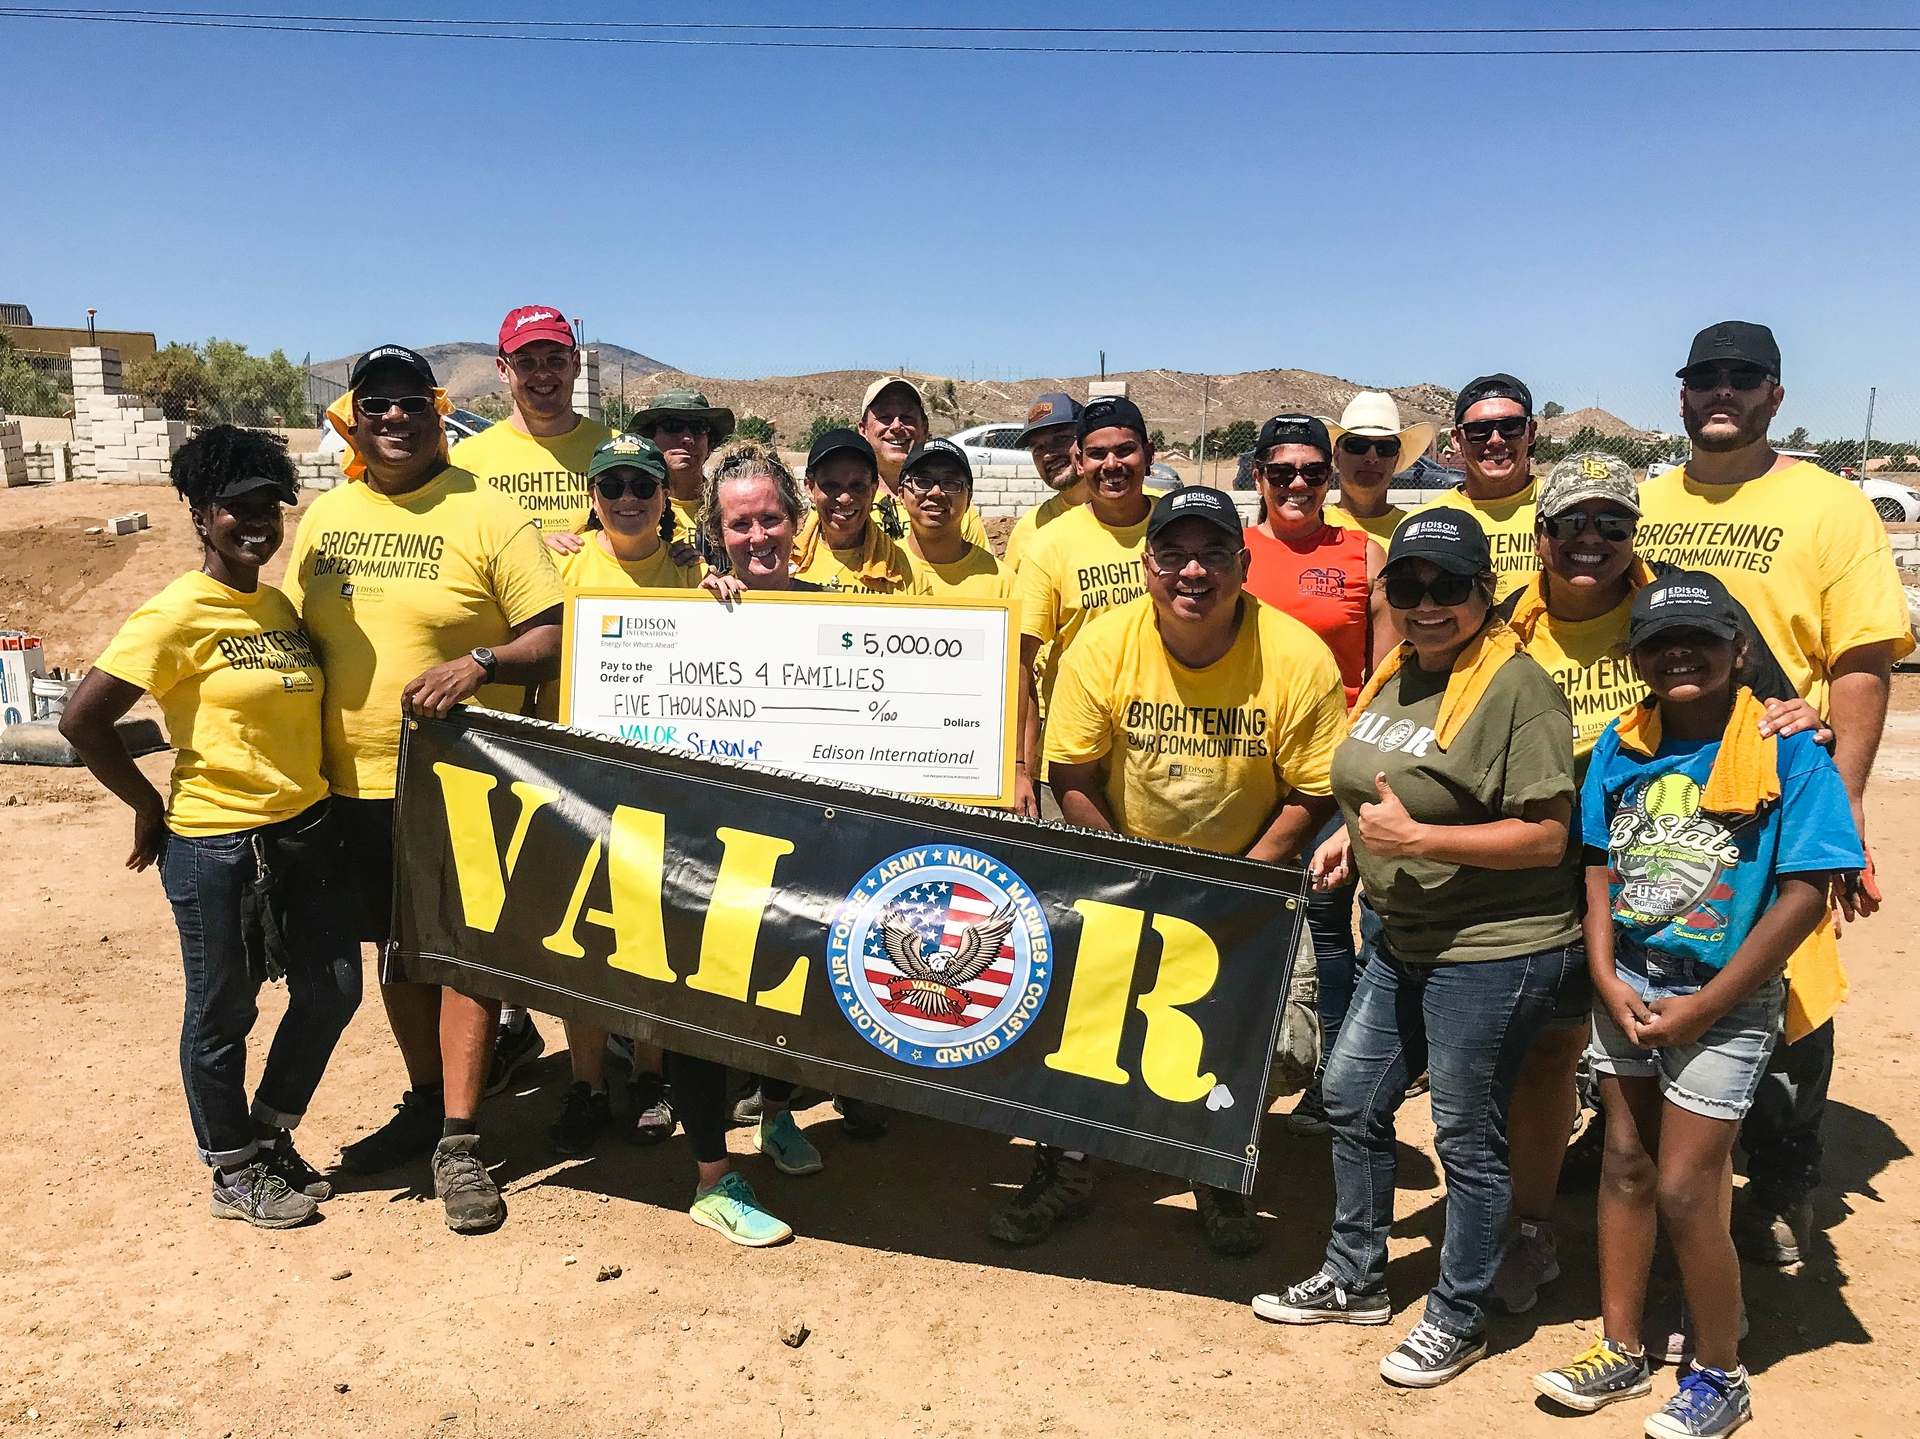 Valor members and volunteers presented a $5,000 grant to Homes4Families on behalf of Edison International to support the nonprofit's community outreach efforts.